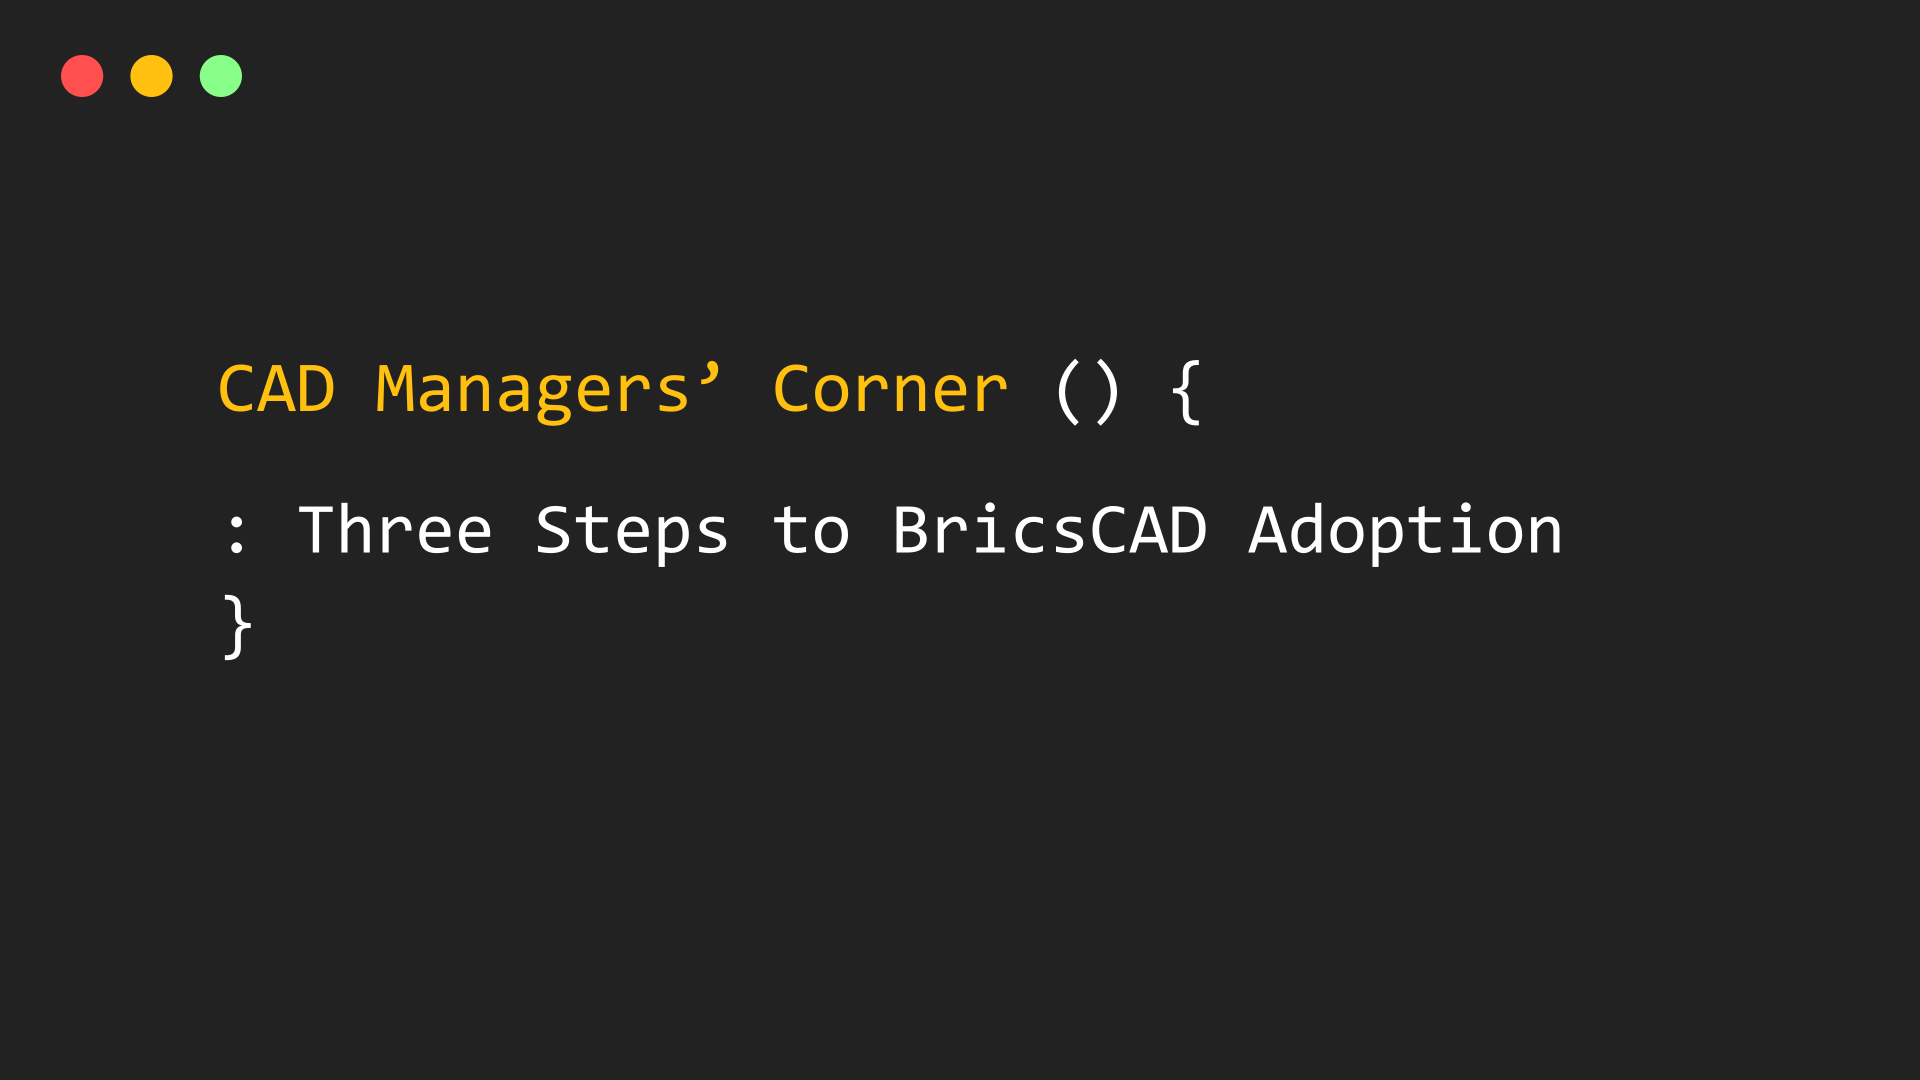 converting to BricsCAD